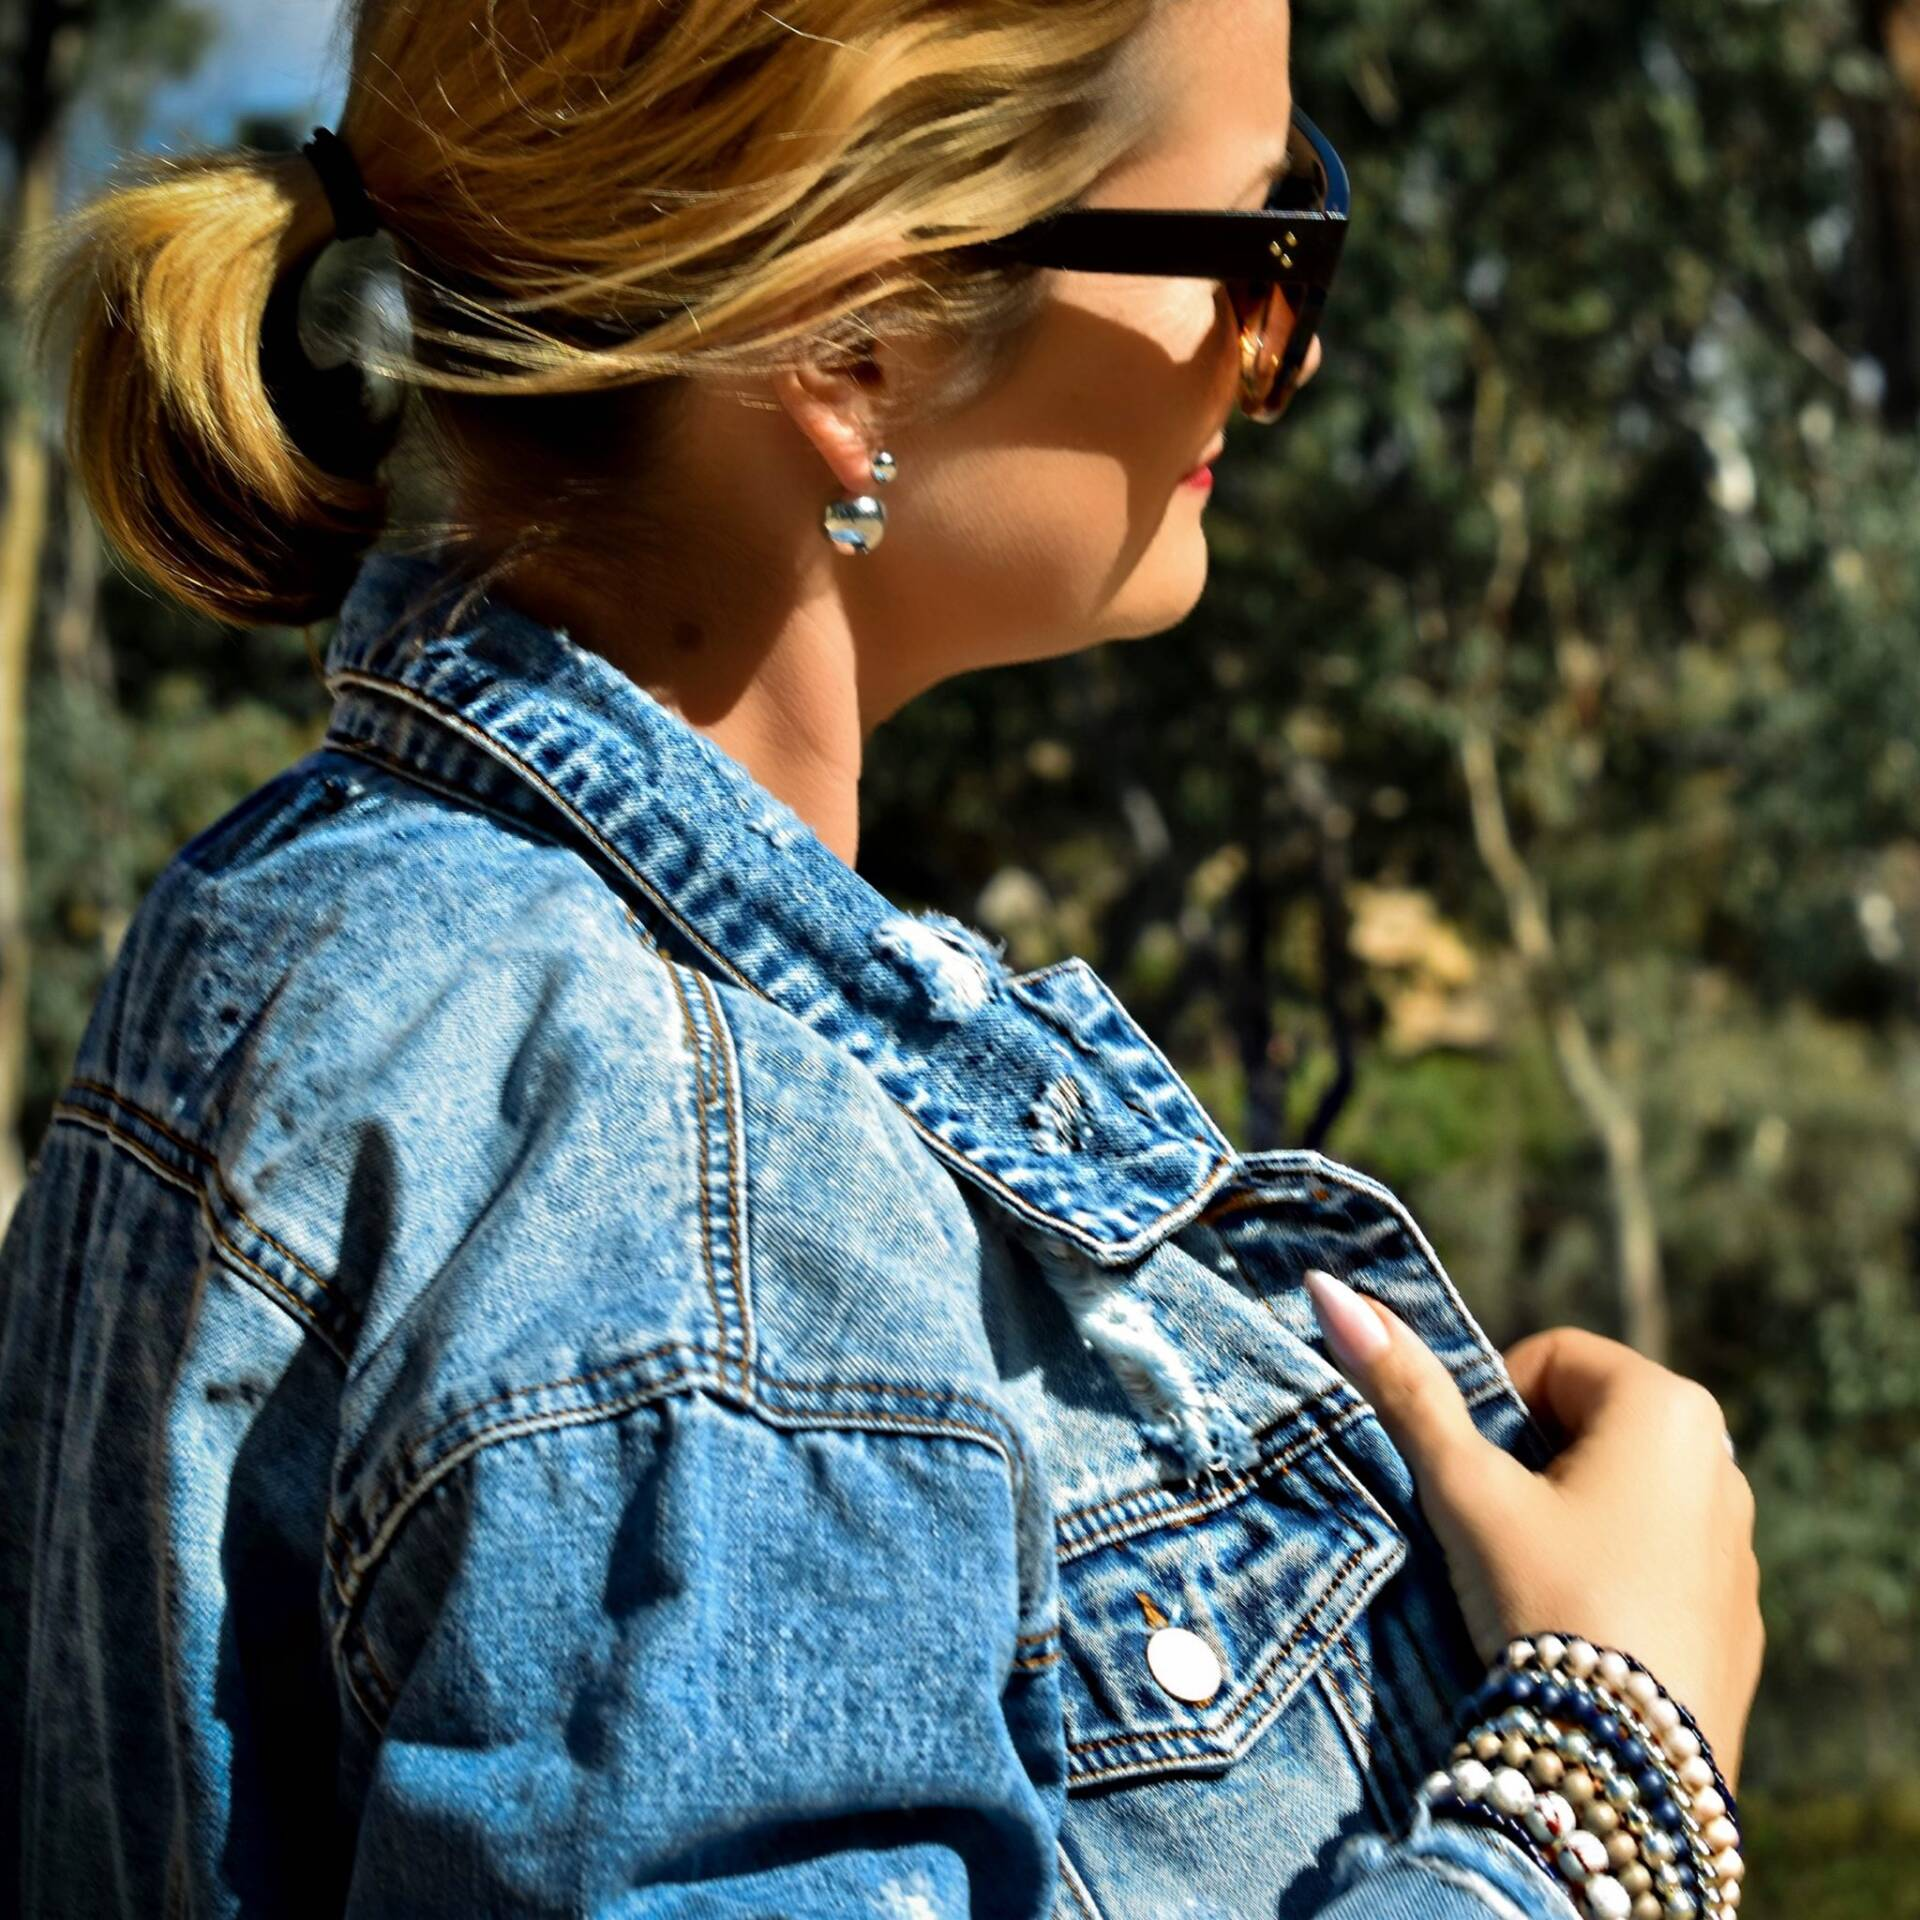 ootd - casual outfit denim jacket